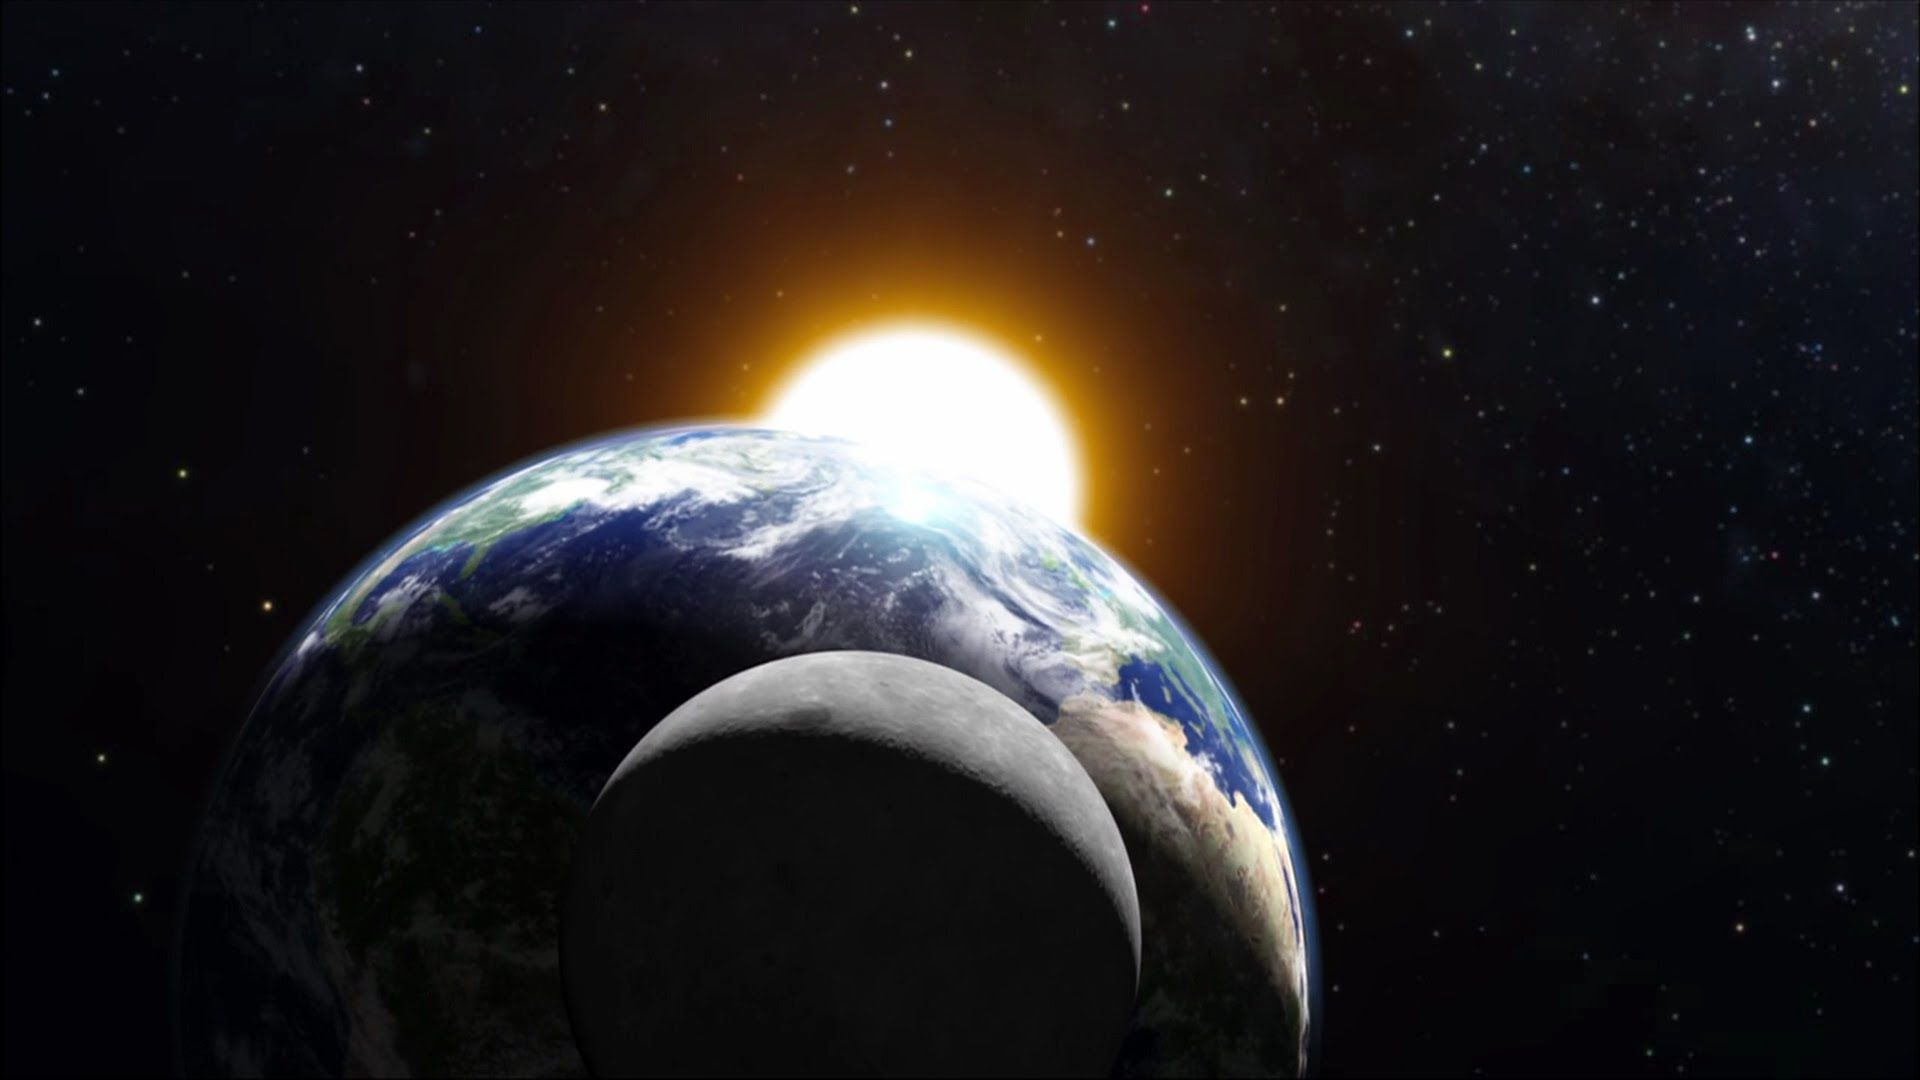 What is the relationship between the earth moon and sun in space